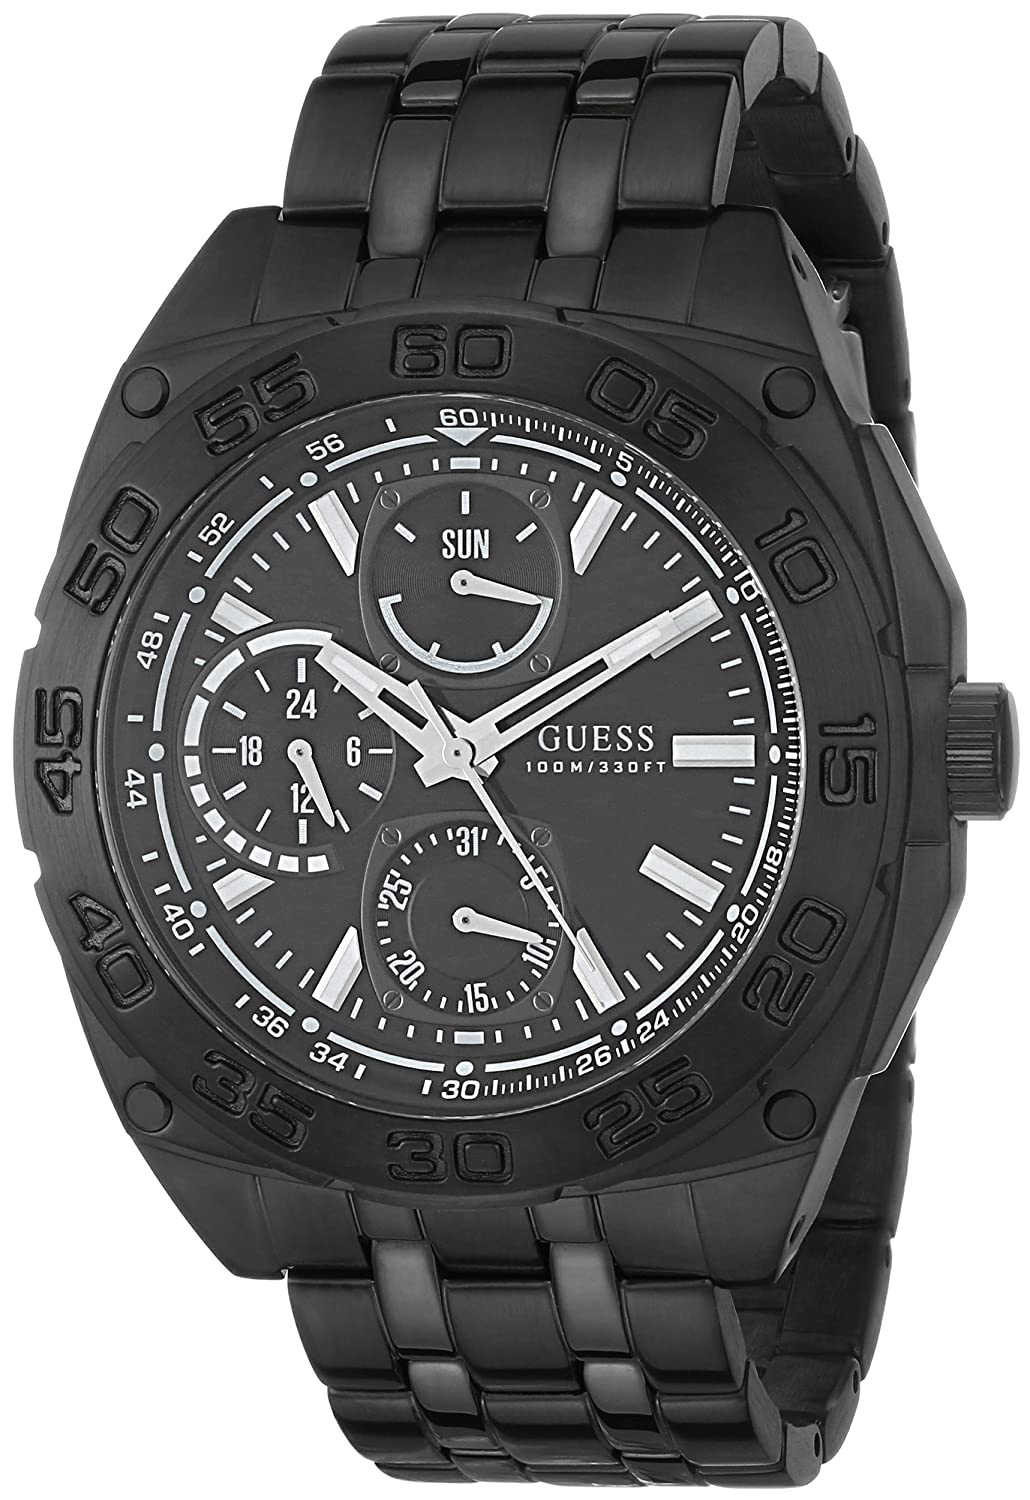 Amazon.com: GUESS Mens U0487G2 Black Ionic Plated Multi-Function Watch: Guess: Watches